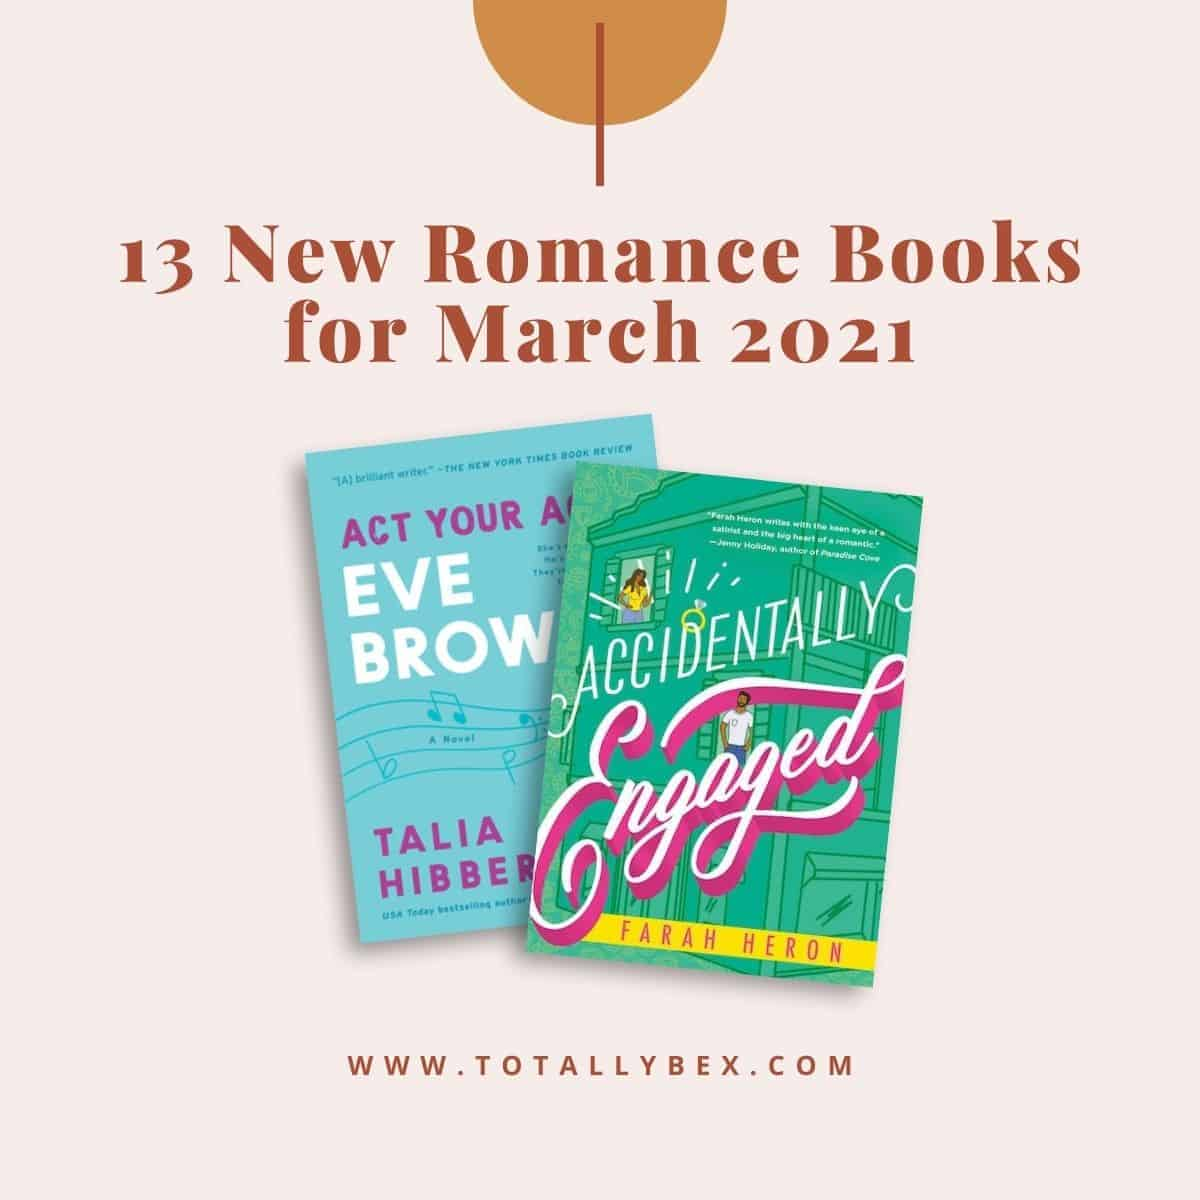 13 New Romance Books for March 2021 is a curated list of contemporary romance novels, historical romance novels, and slow burn romance books releasing in March 2021